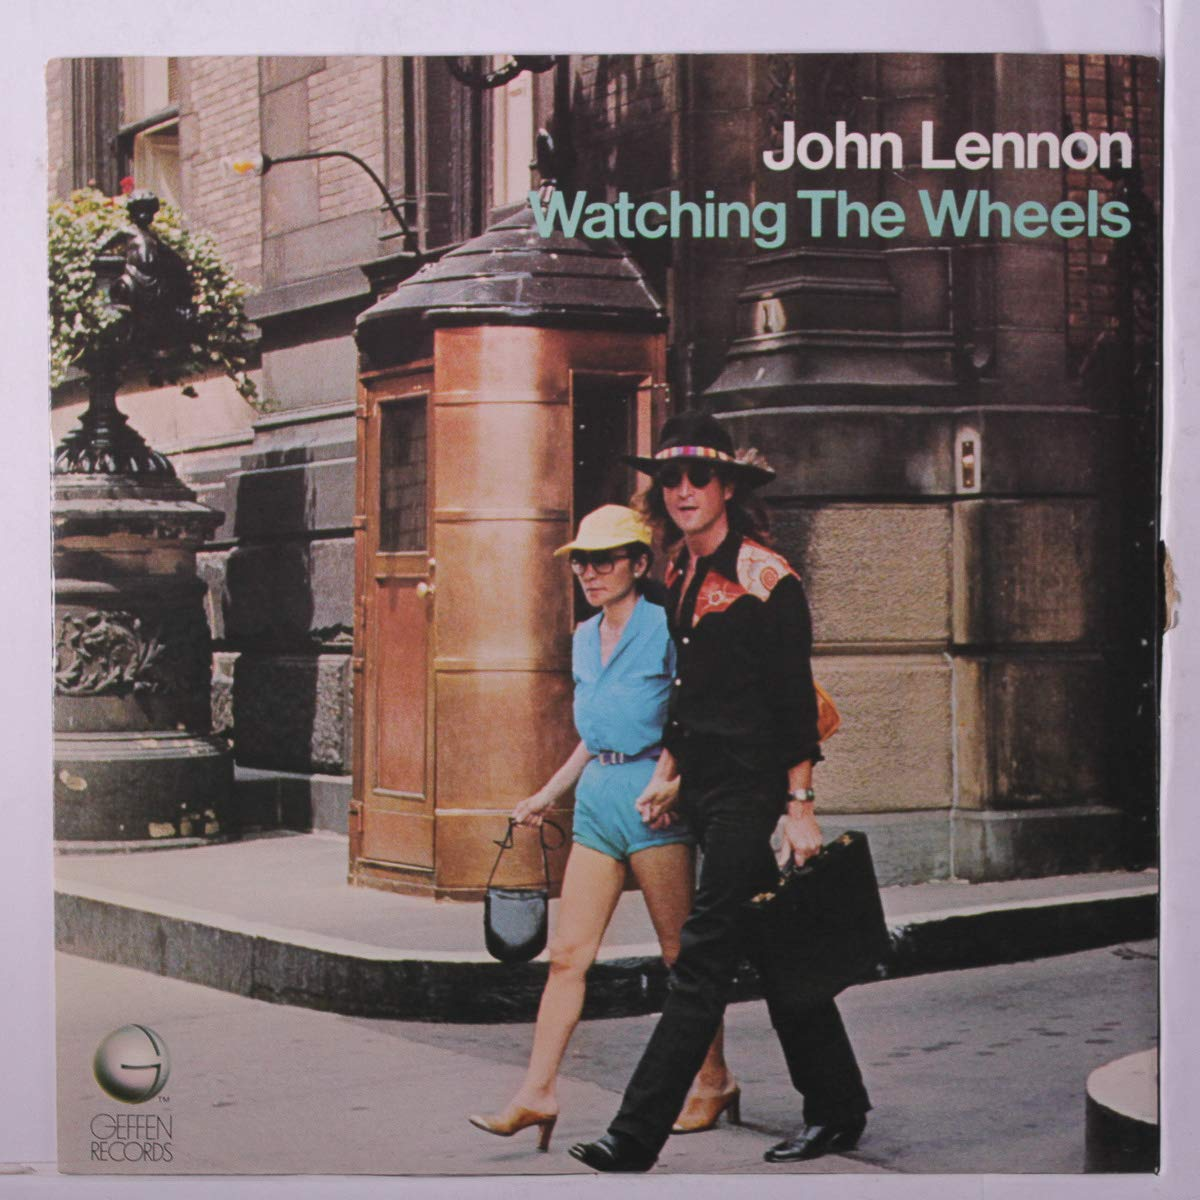 John Lennon – Watching The Wheels